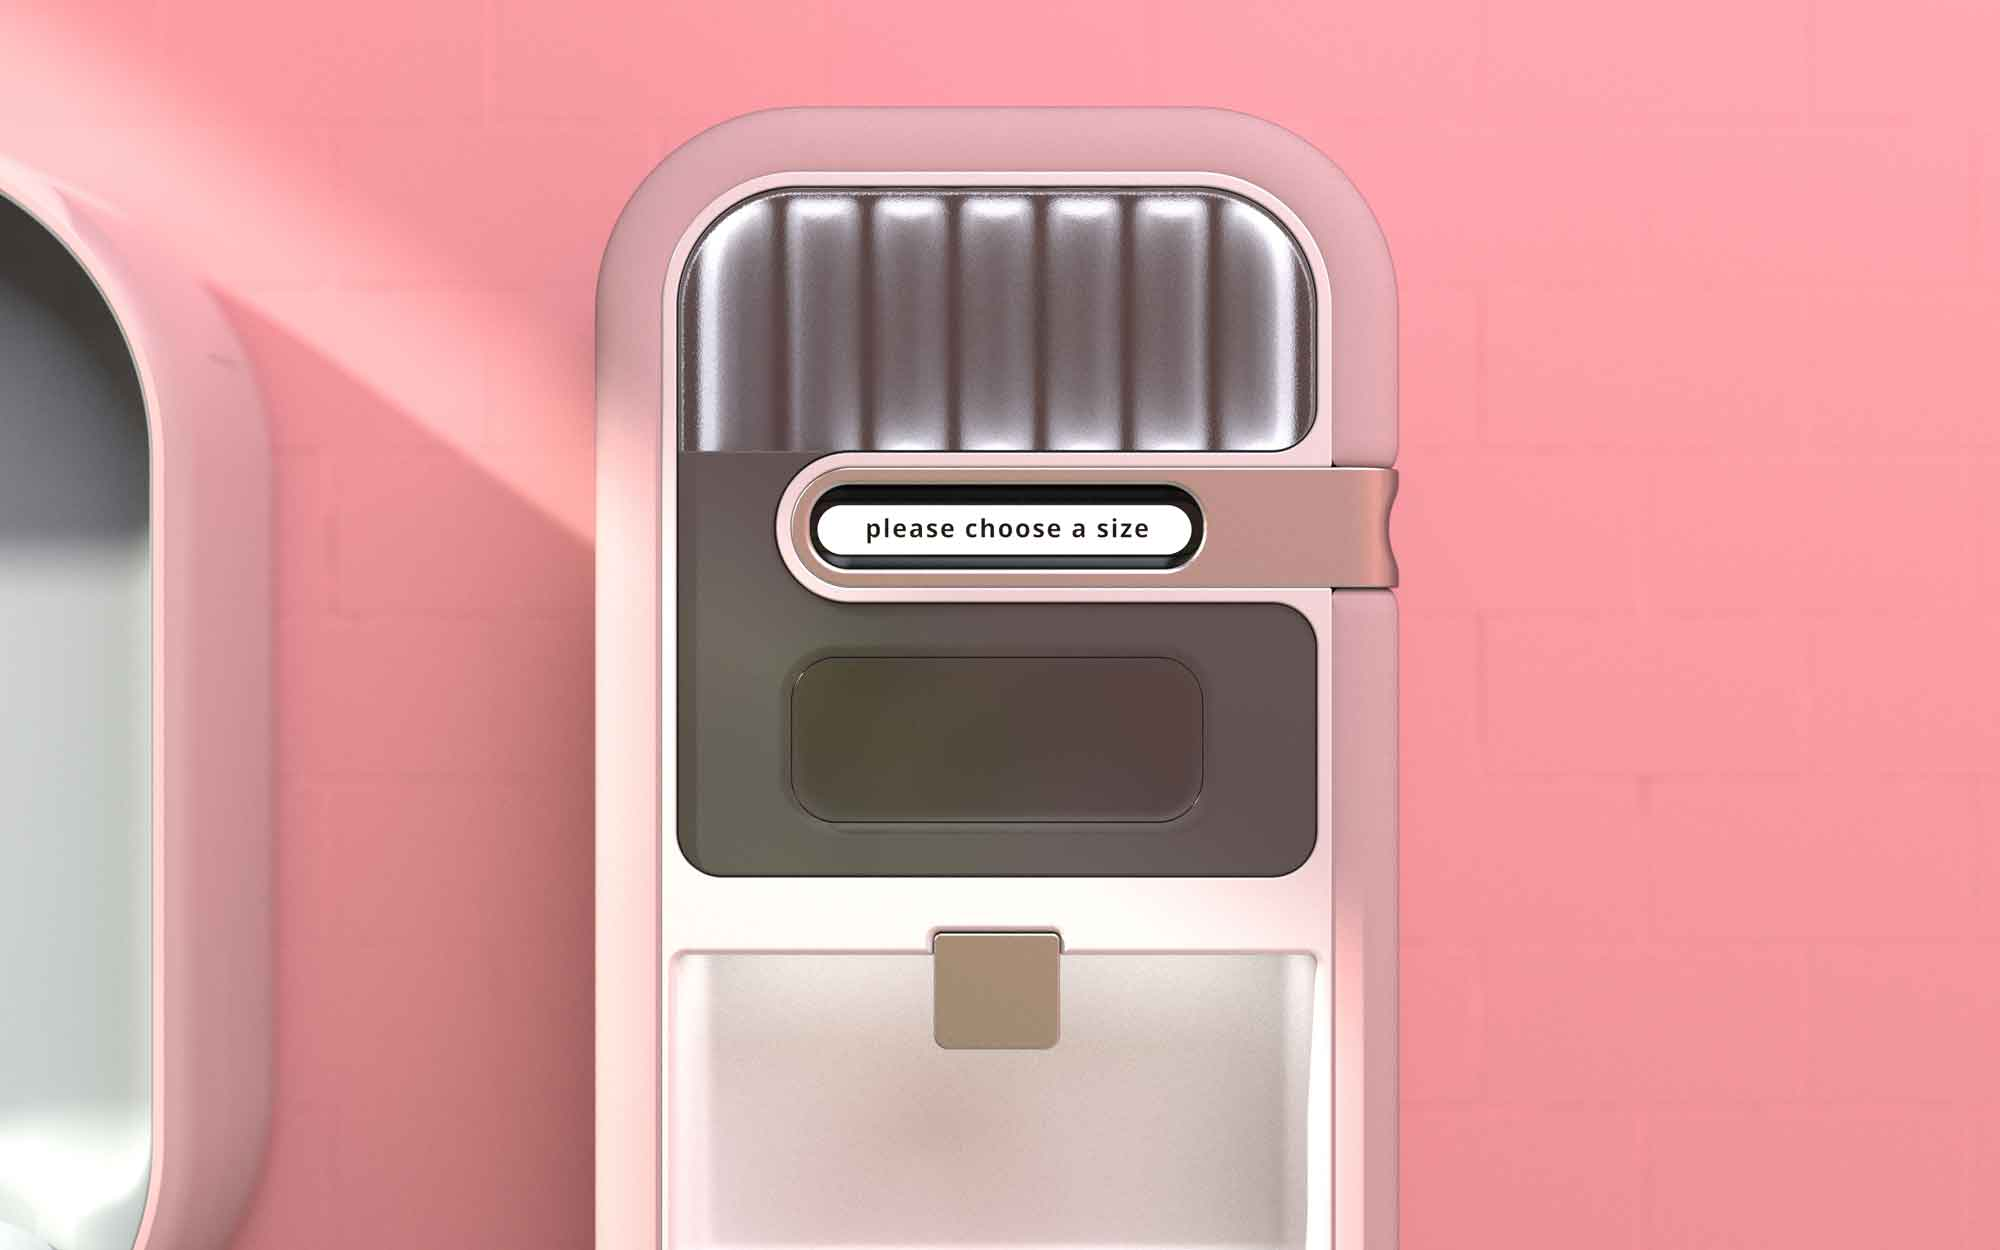 Dispense diaper by age group or weight, use the hand sanitizer dispenser below, or use the garbage bin in the base.